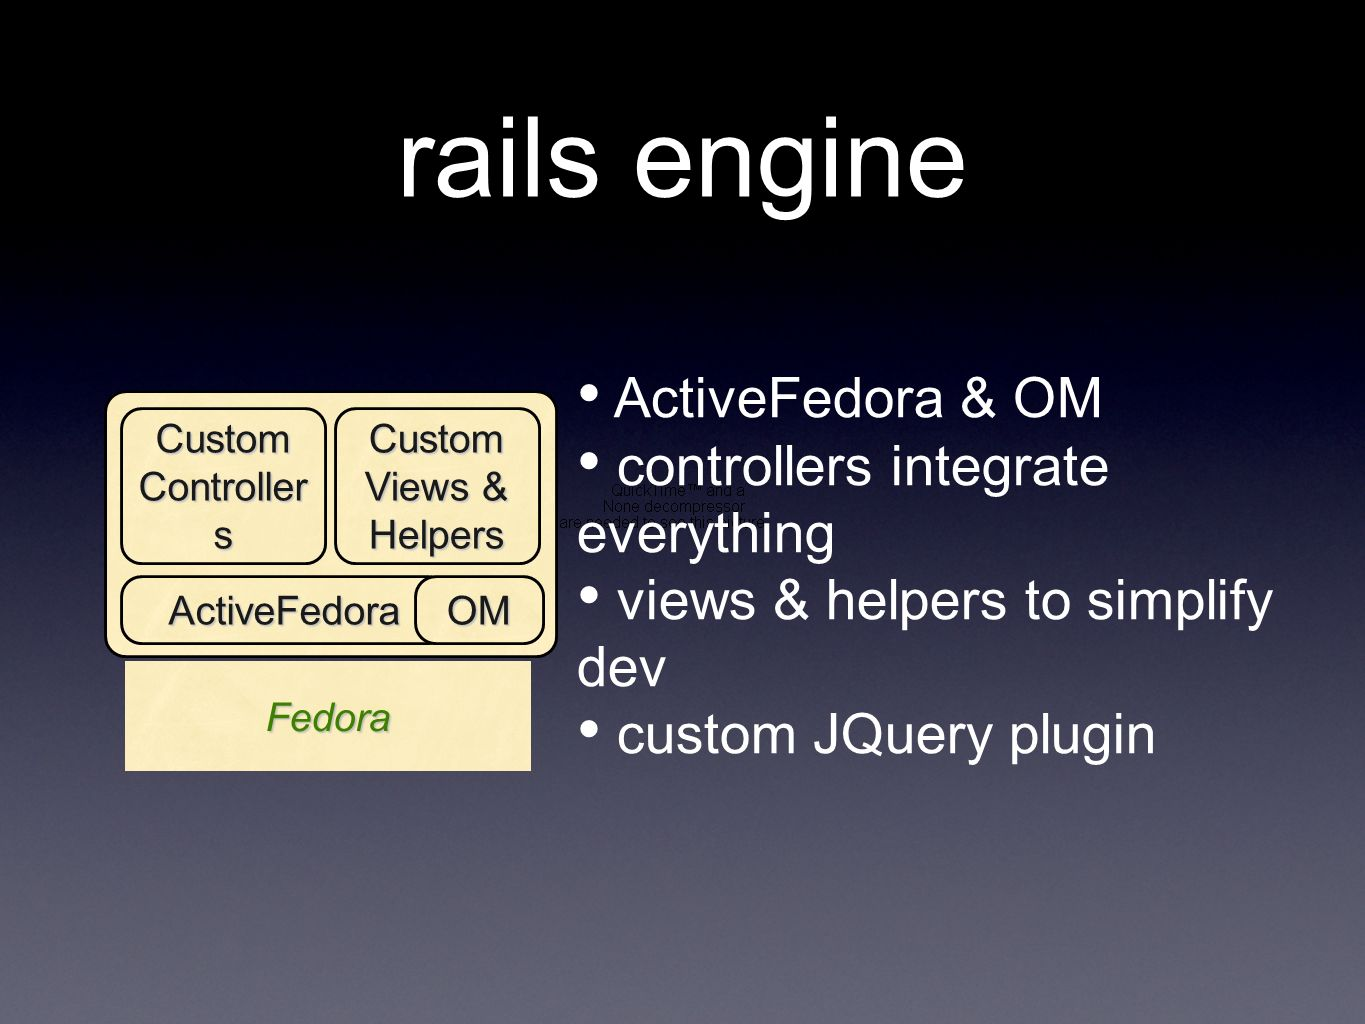 rails engine Fedora ActiveFedora Custom Controller s Custom Views & Helpers OM ActiveFedora & OM controllers integrate everything views & helpers to simplify dev custom JQuery plugin